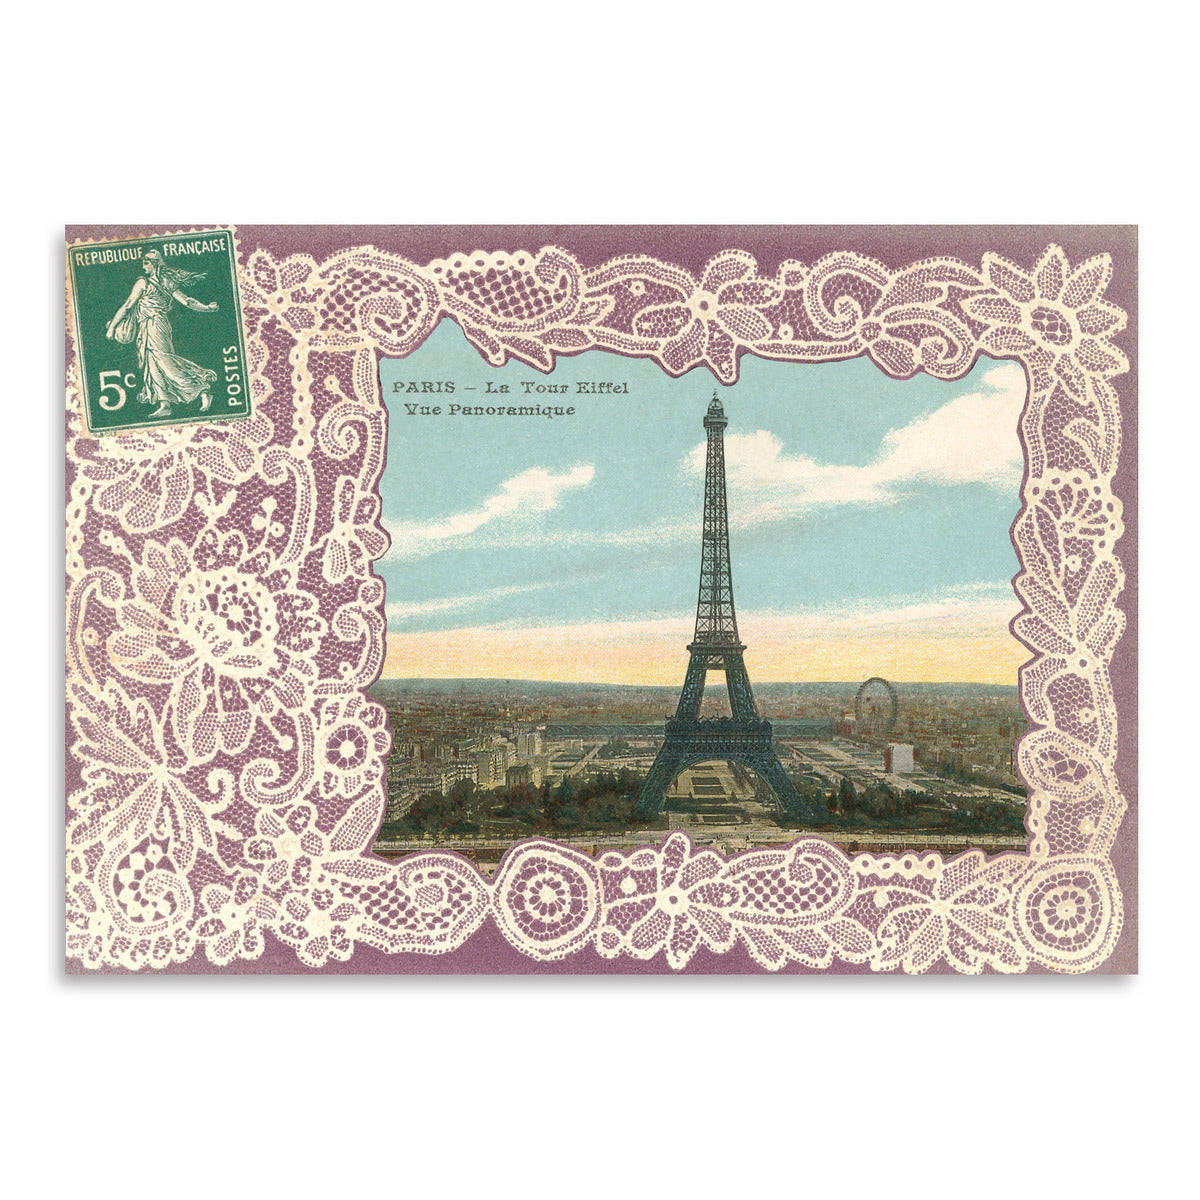 Eiffel Tower Postcard Stamp by Found Image Press Art Print - Art Print - Americanflat